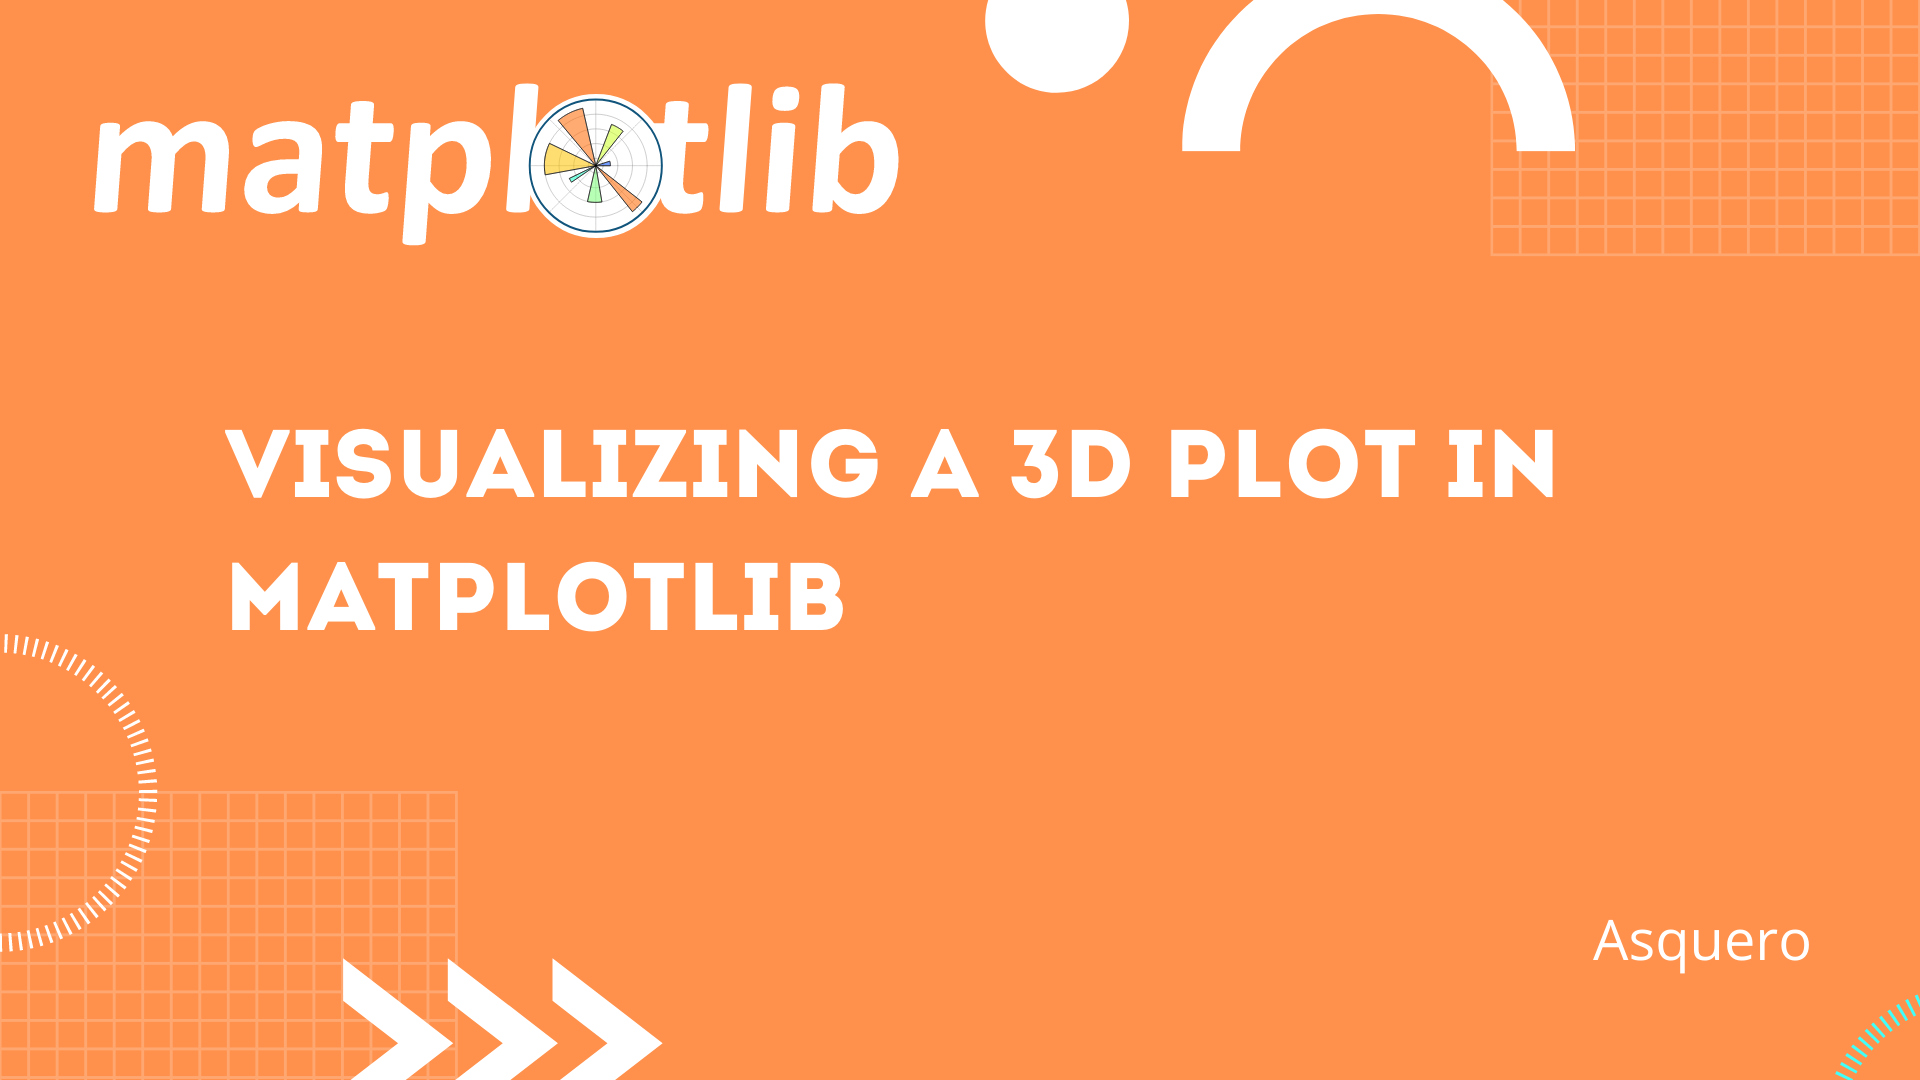 Visualizing a 3D plot in Matplotlib